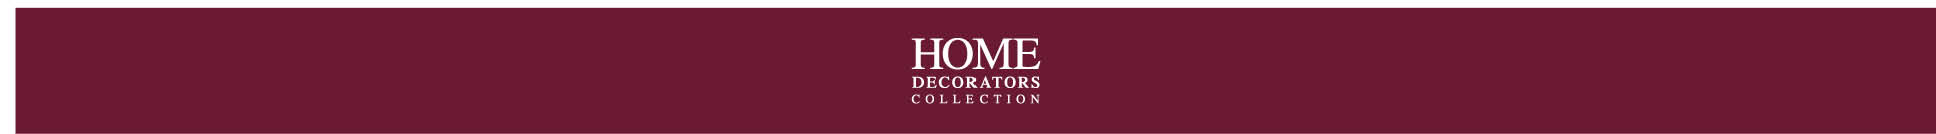 Home Decorators Collection Flooring